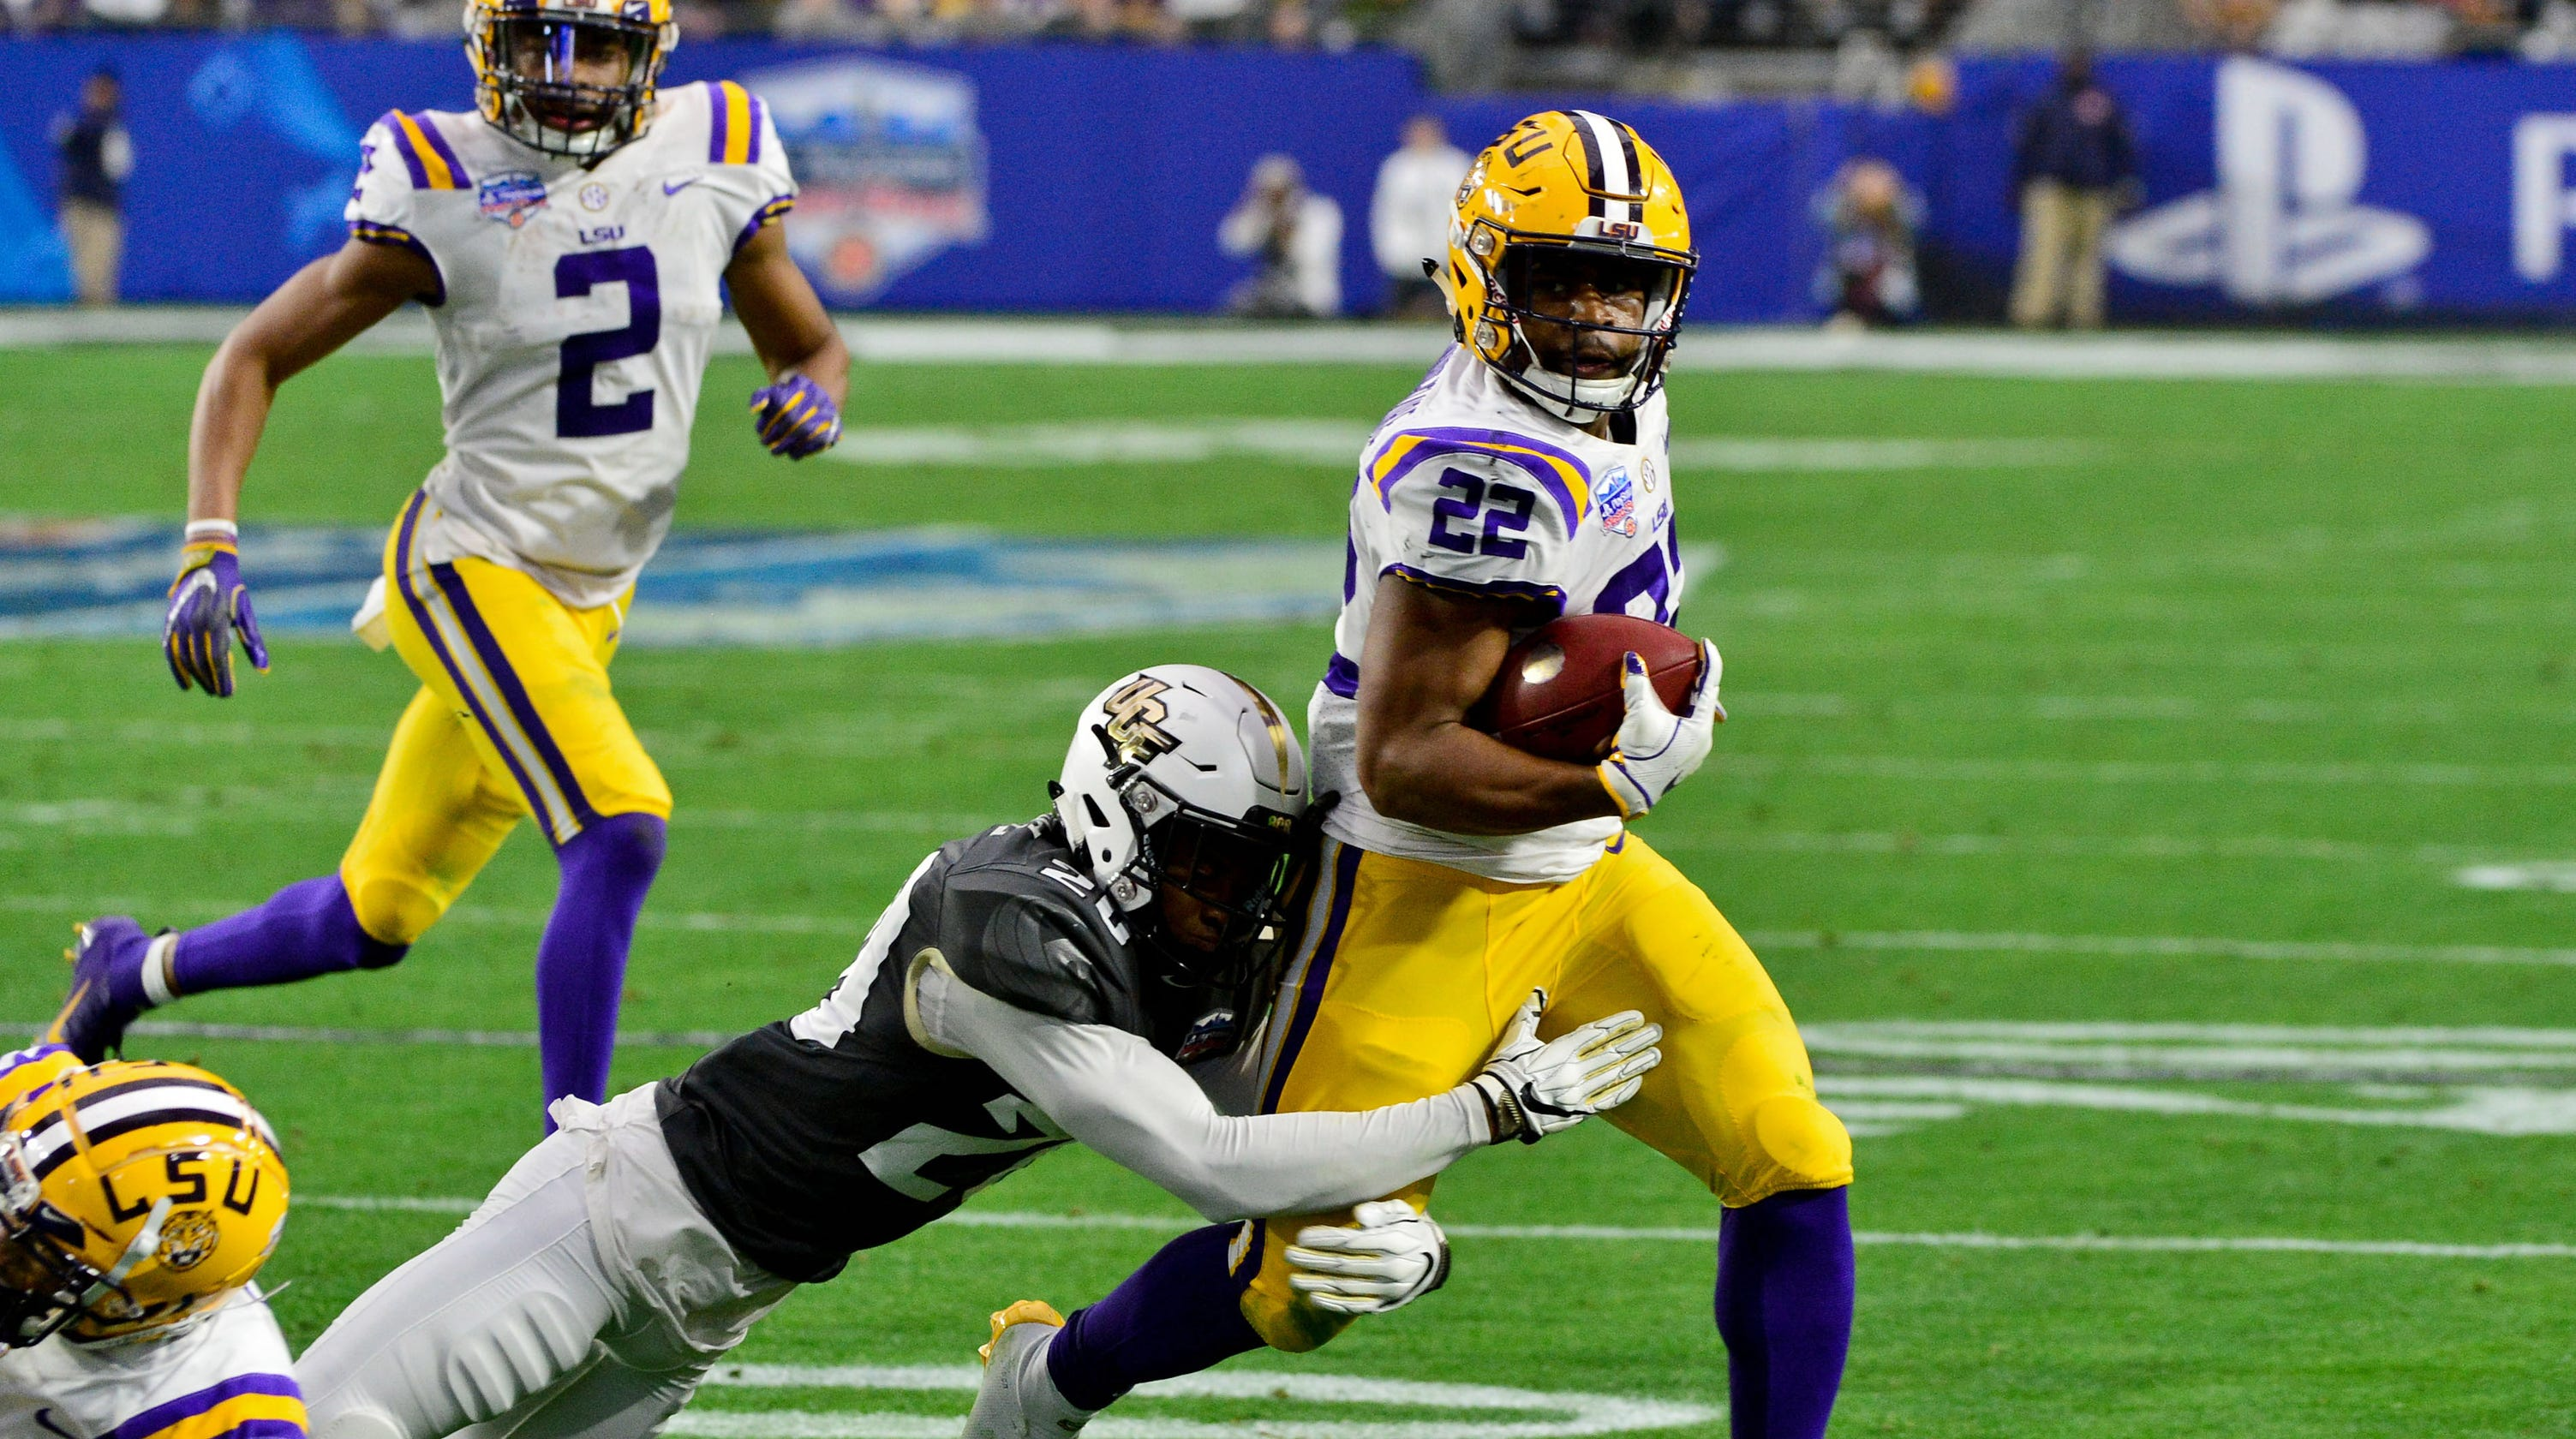 2019 Lsu Football Schedule Dates Times Tv Assignments